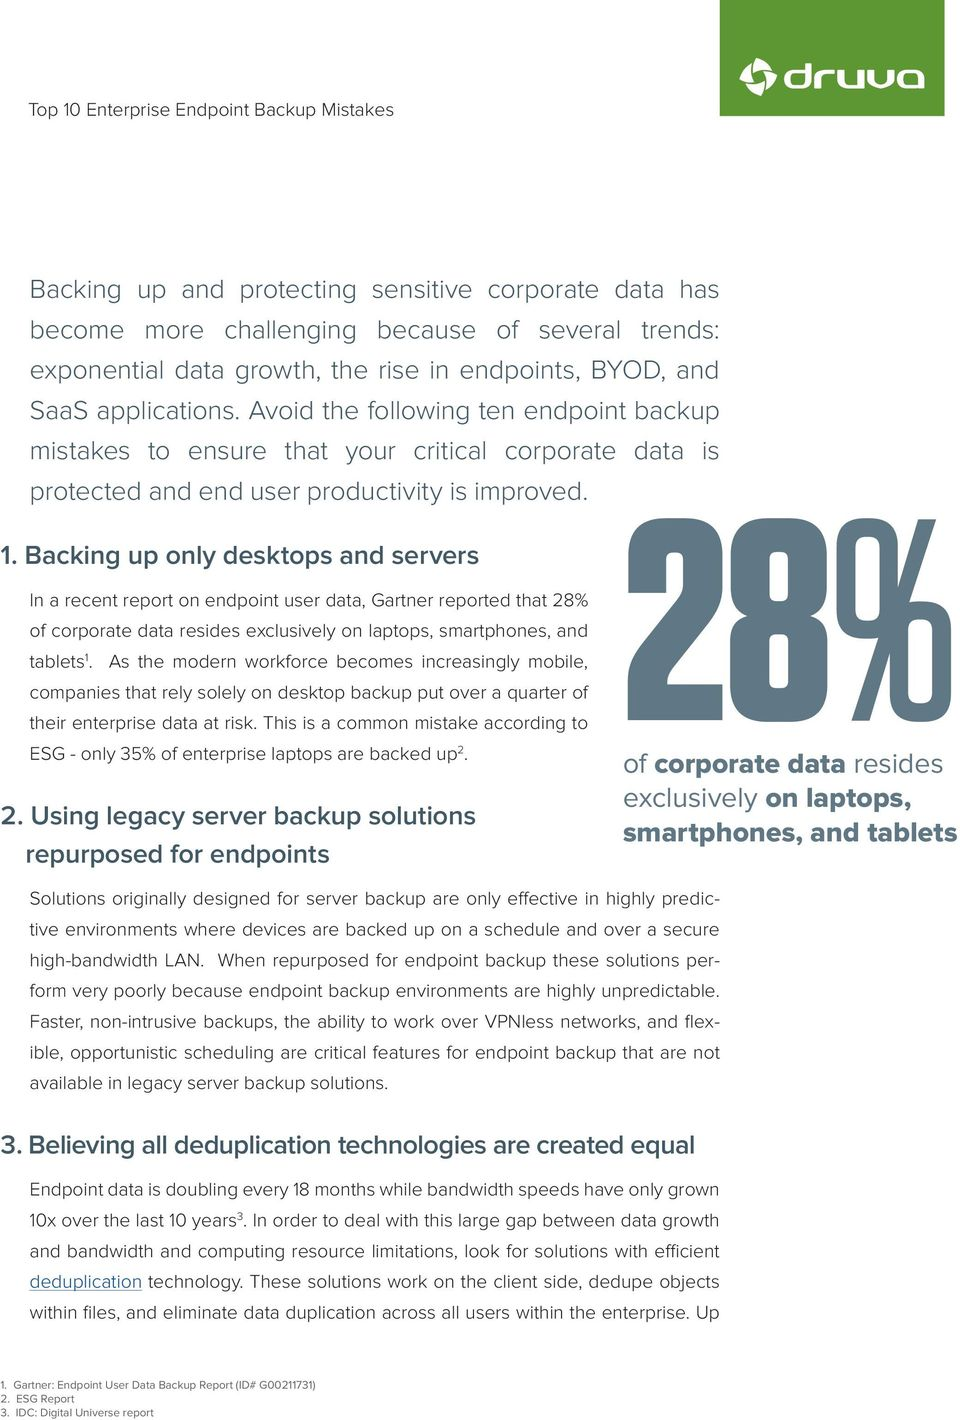 Backing up only desktops and servers In a recent report on endpoint user data, Gartner reported that 28% of corporate data resides exclusively on laptops, smartphones, and tablets 1.